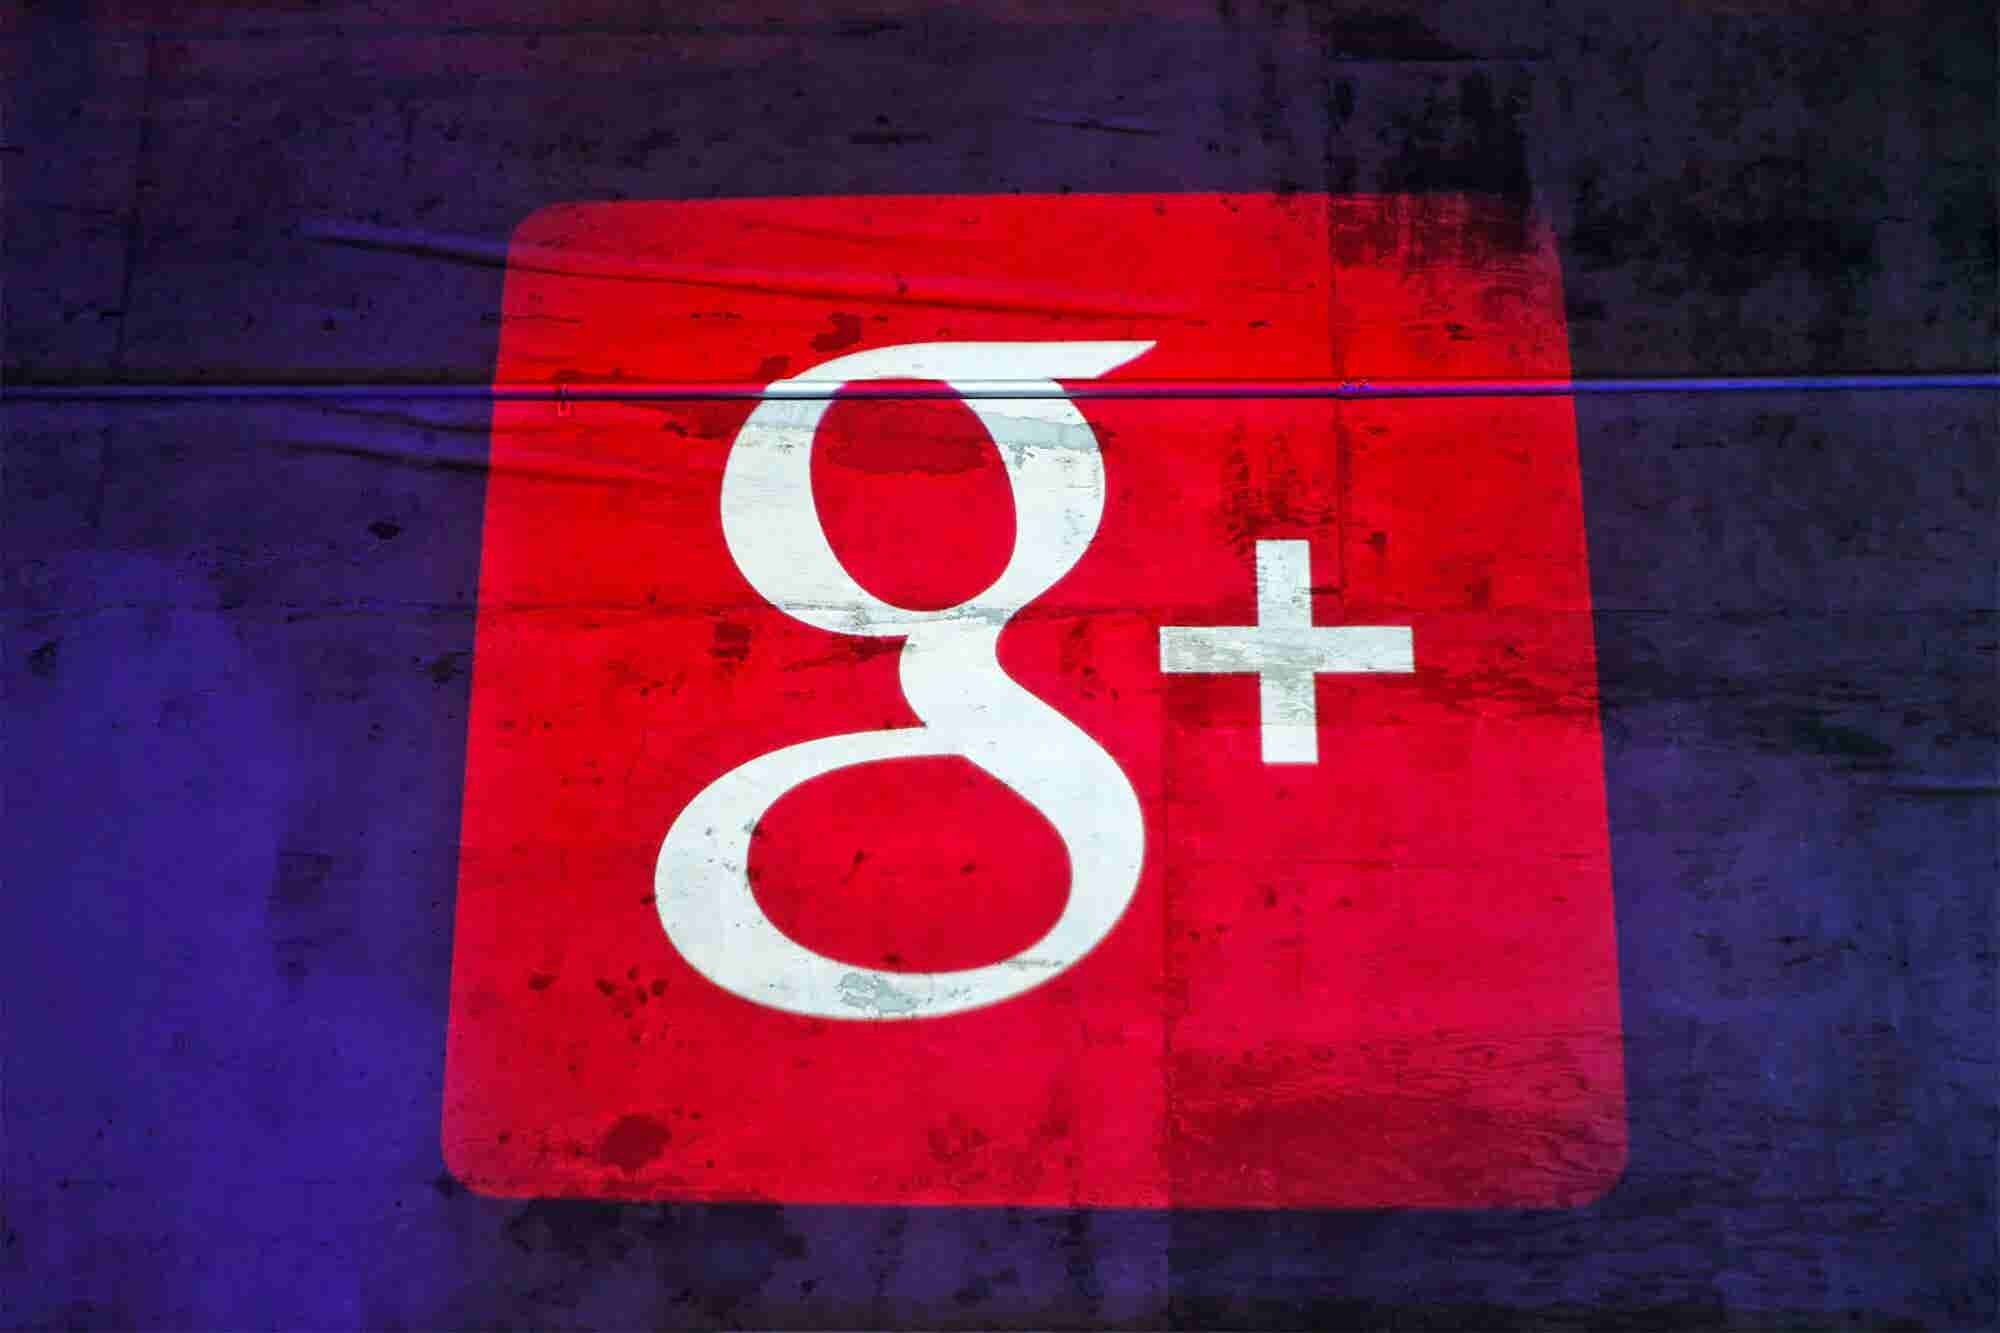 Google Shutters Google+ After It Exposed Data for Hundreds of Thousands of Users